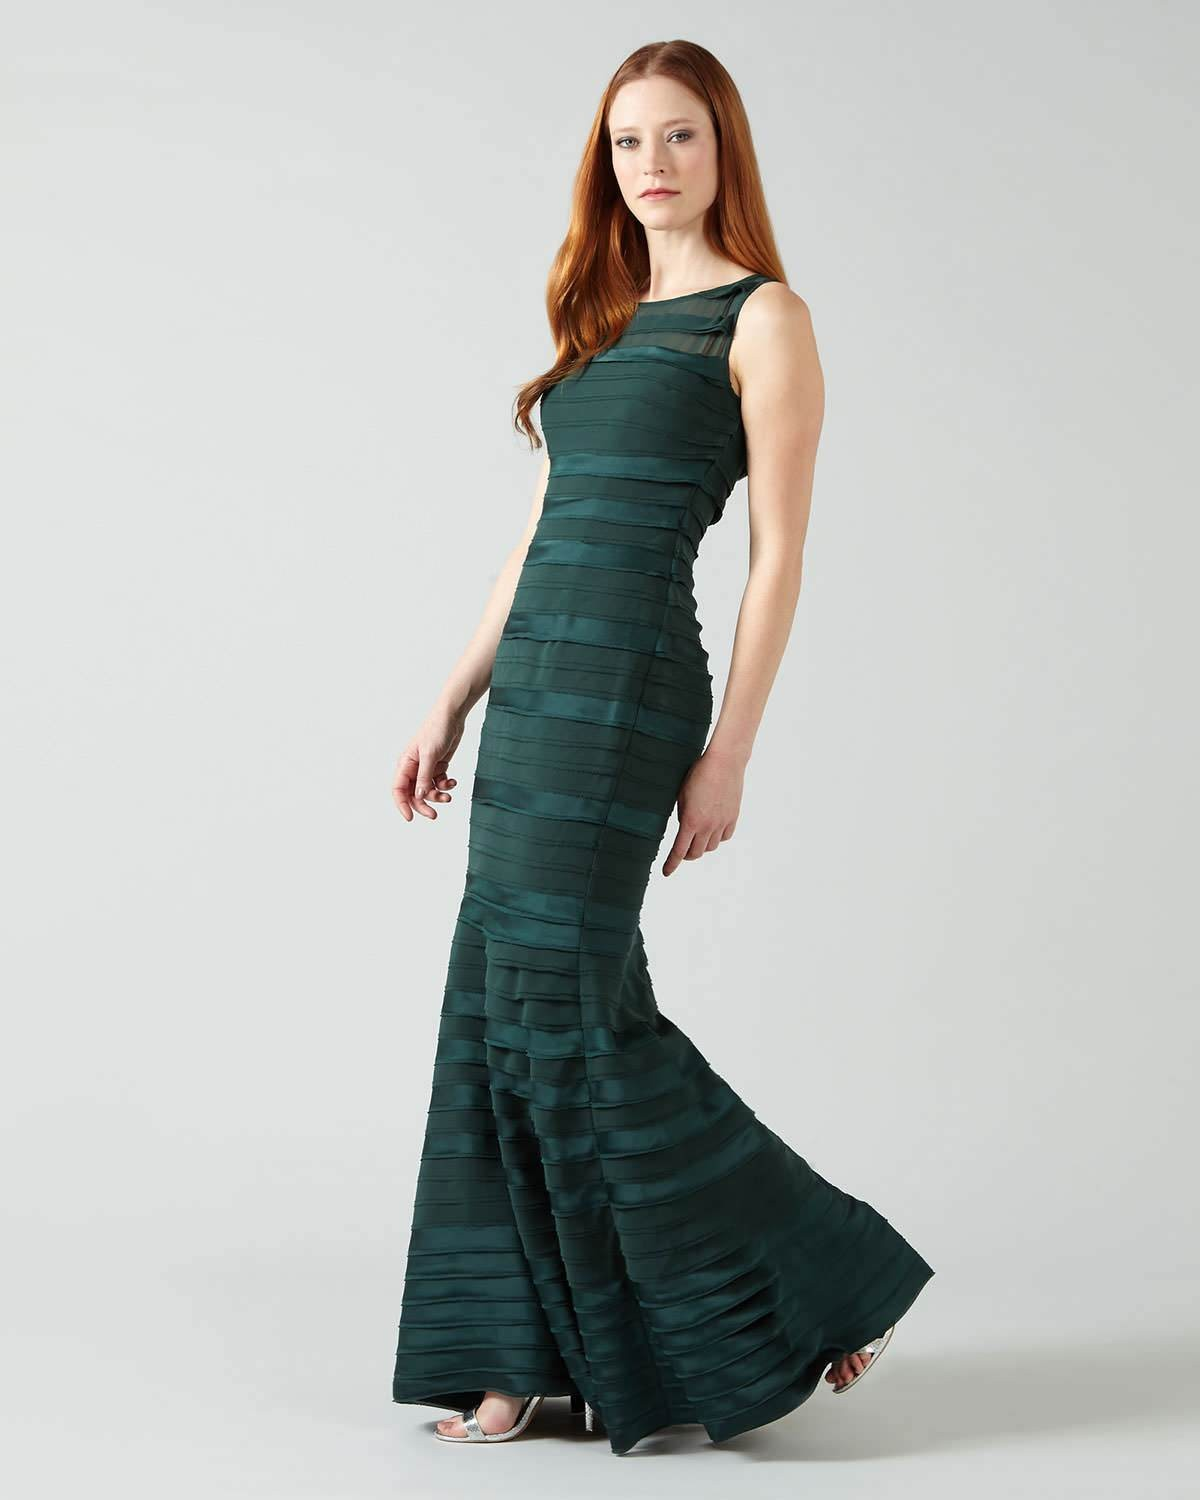 2f17c0594f71 ... Shannon Layered Full Length Dress | Emerald | Phase Eight ...